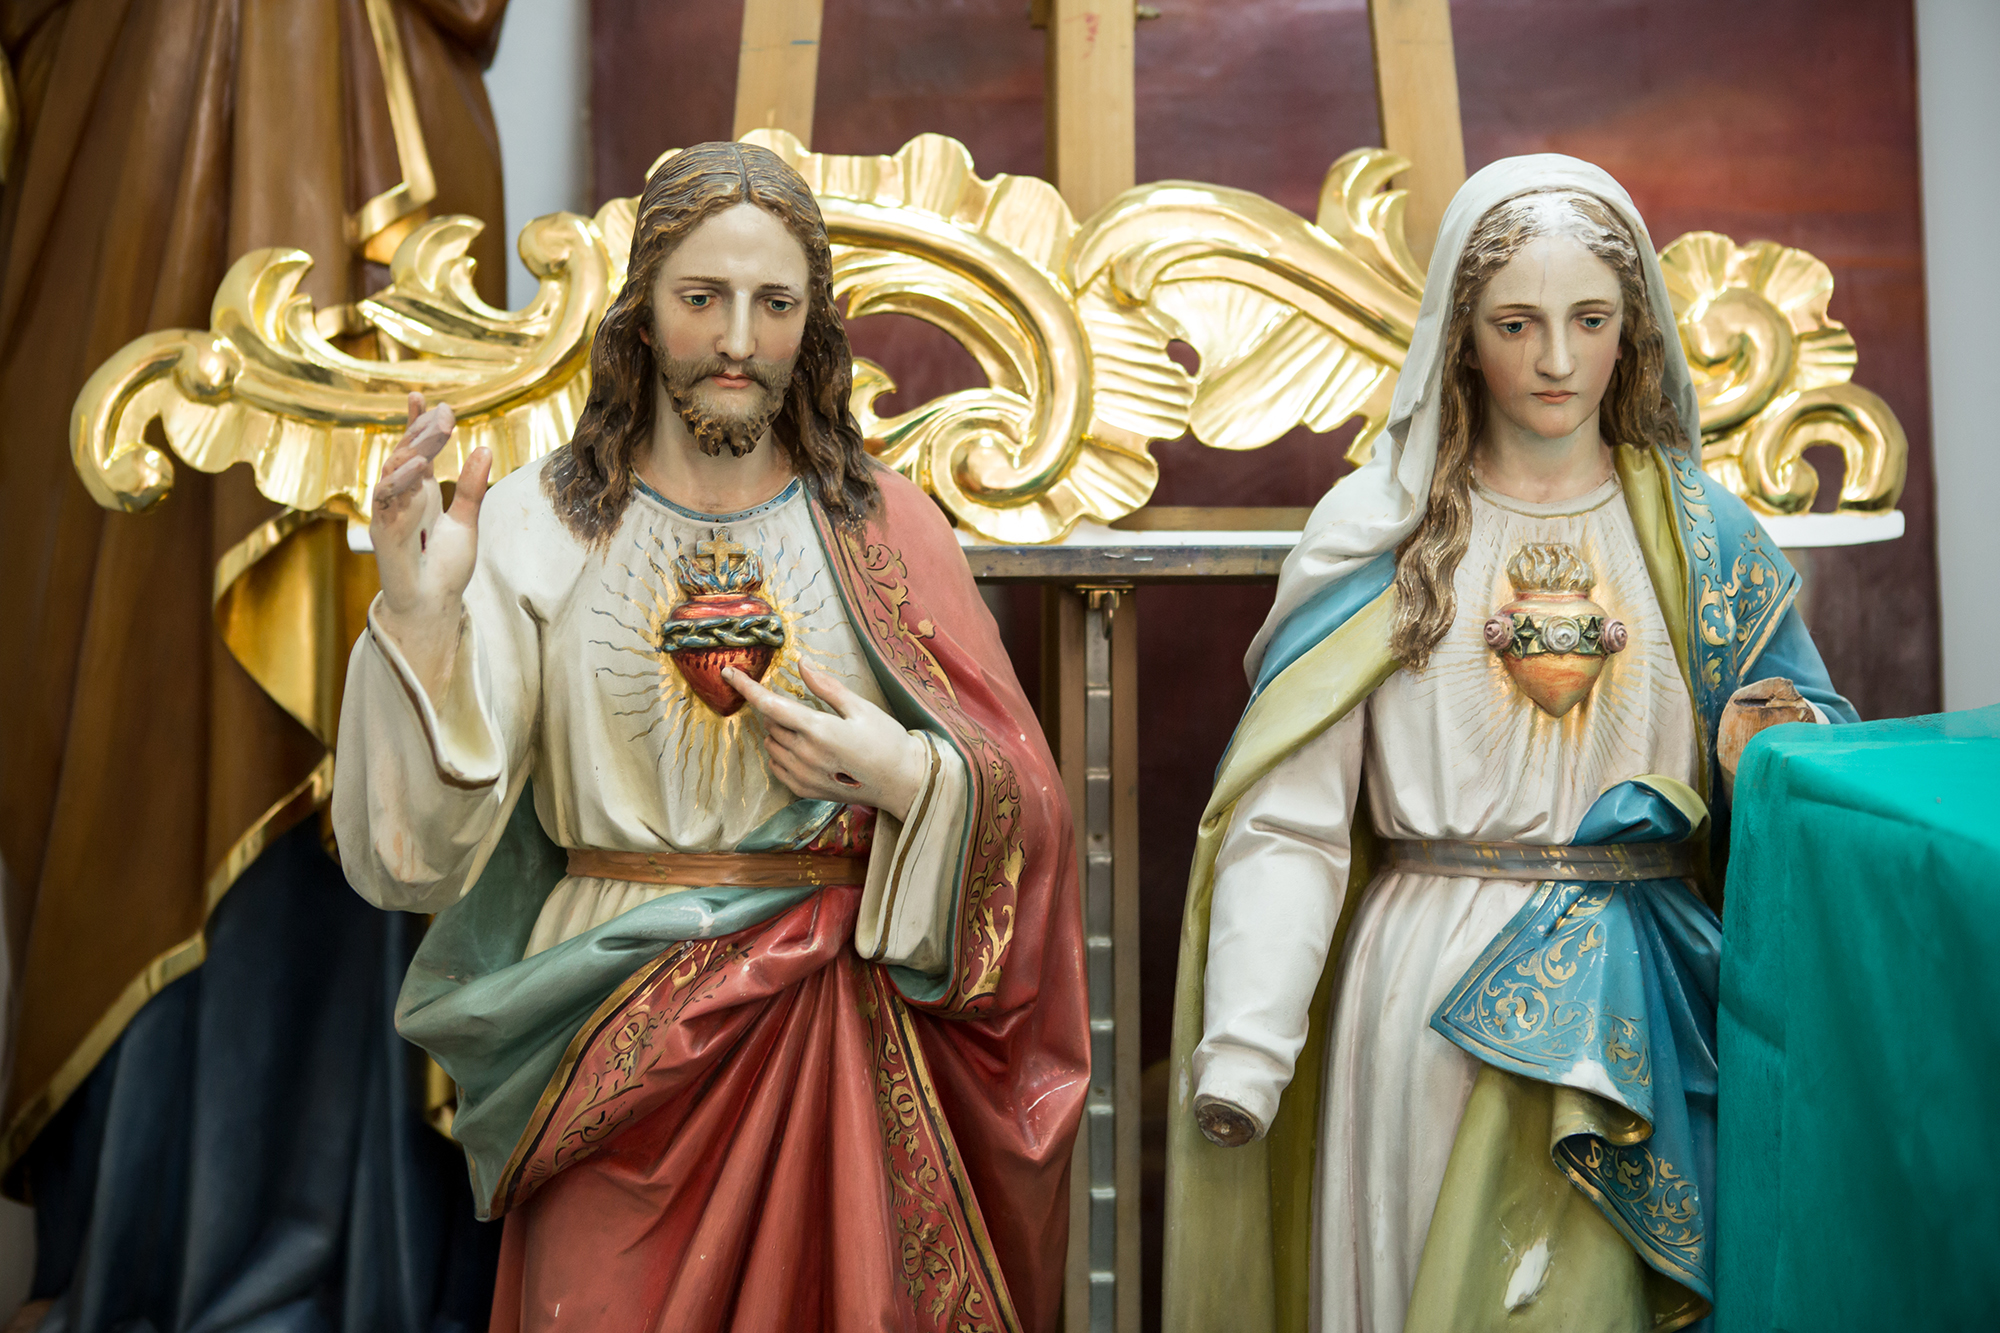 Figures of Jesus Christ and Holy Mary for renovating.